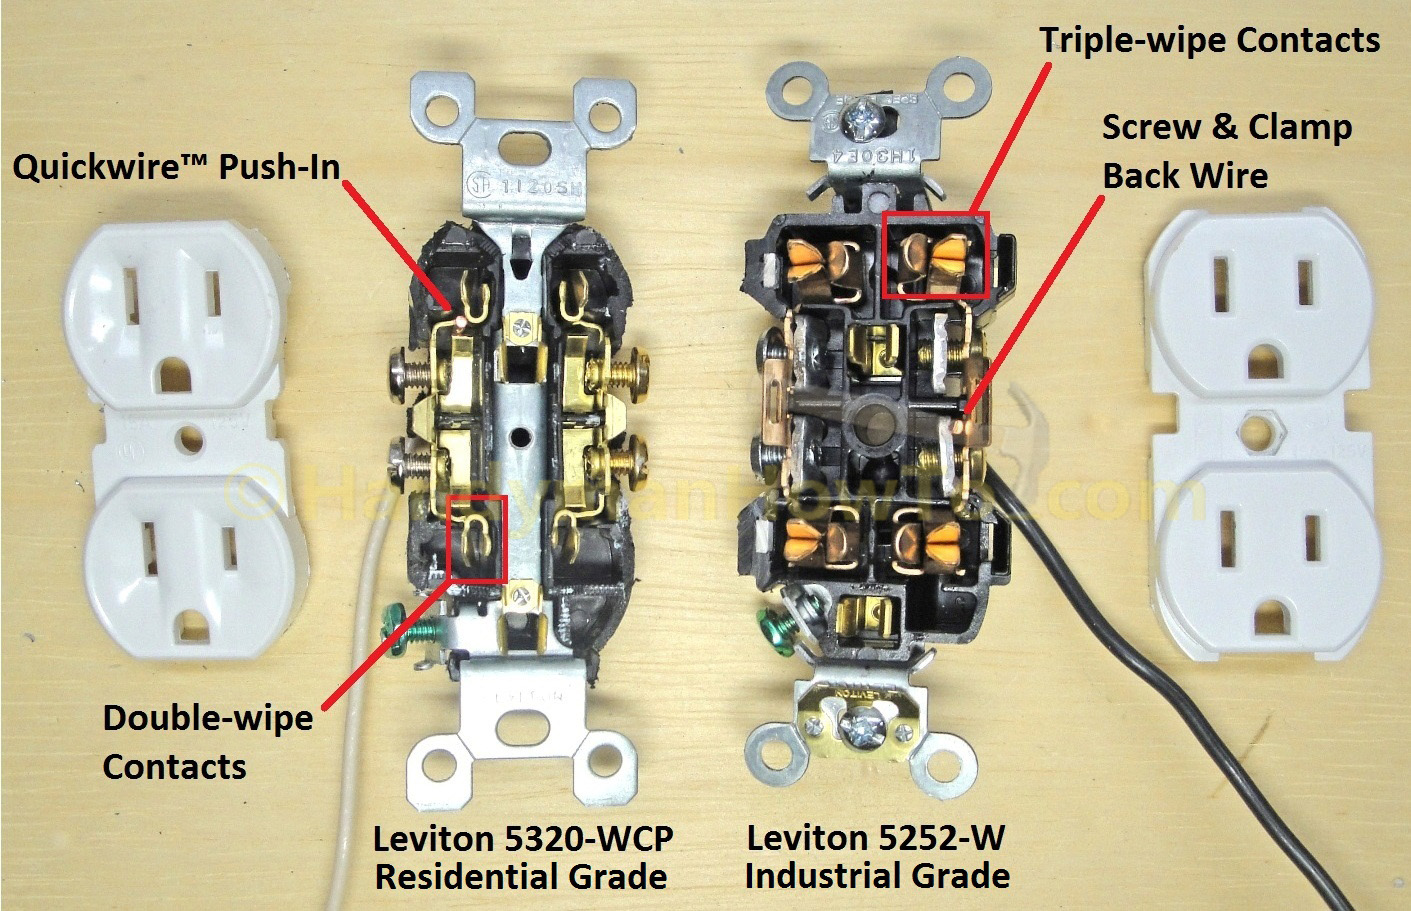 L298n Wiring Diagram in addition What Is The Proper Way To Wire A Light Switch Fan Switch And Receptacle In One B moreover Product 200326702 200326702 also Brunswick Nexgen Wiring Diagram furthermore Plugmold Multi Outlet Systems With Usb Charging Or Gfci Protection. on wiring gfci outlets in series